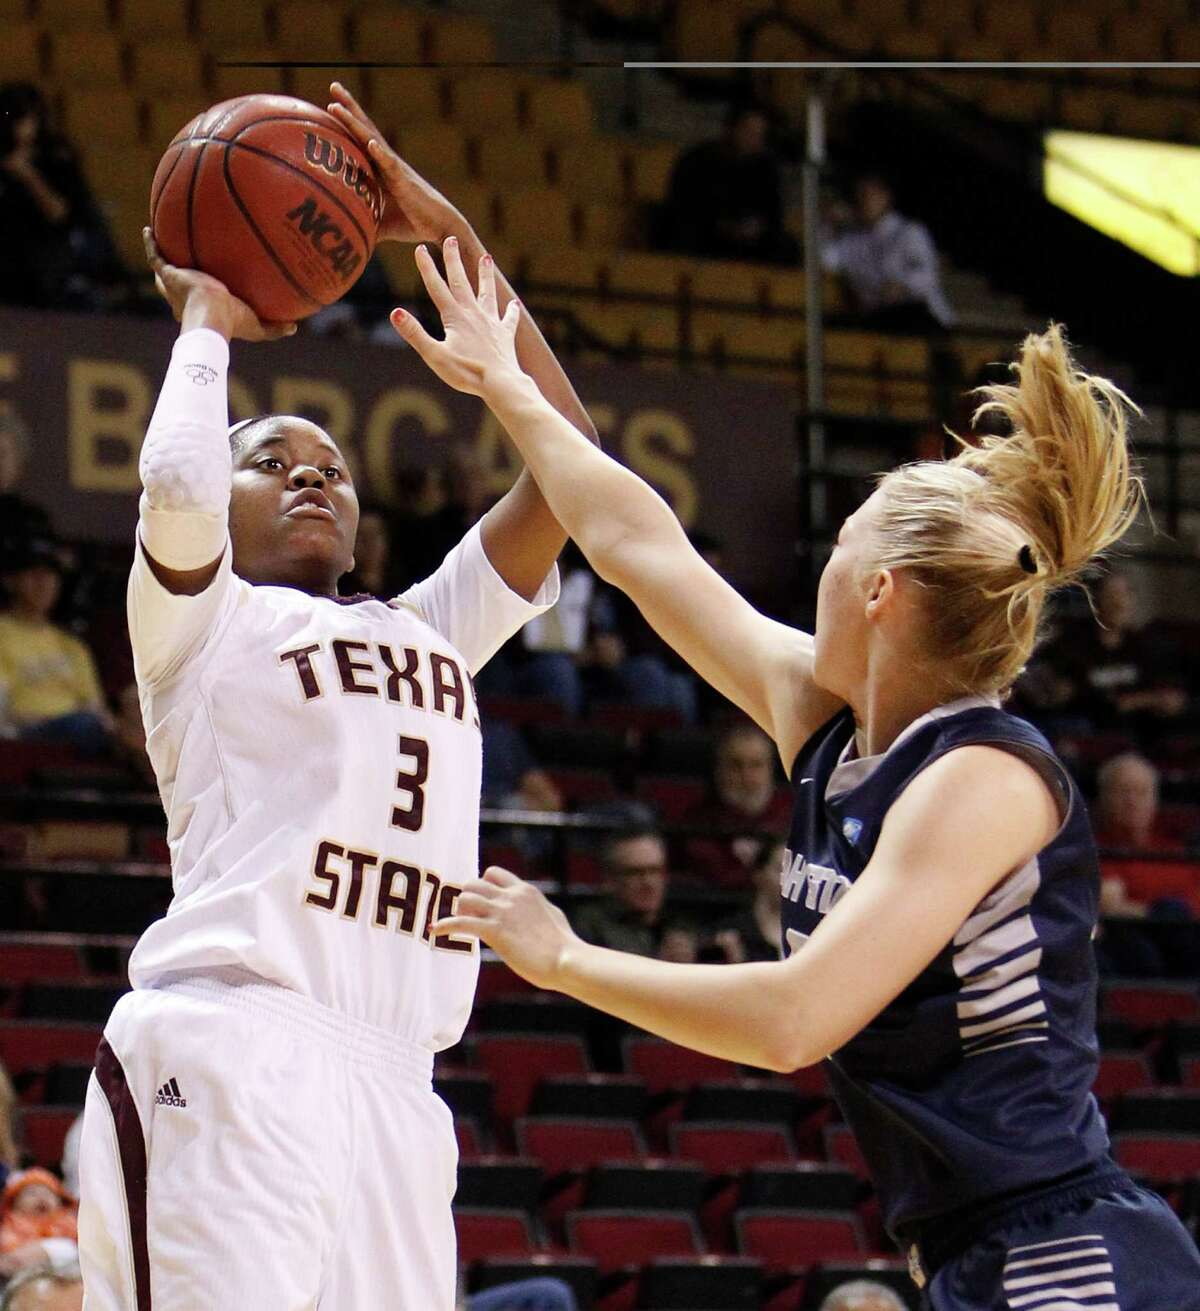 FOR SPORTS - Texas State's Diamond Ford gets a shot off against the Utah State defense during first half action at Strahan Coliseum in San Marcos on Thursday, March 7, 2013. MICHAEL MILLER / FOR THE EXPRESS-NEWS